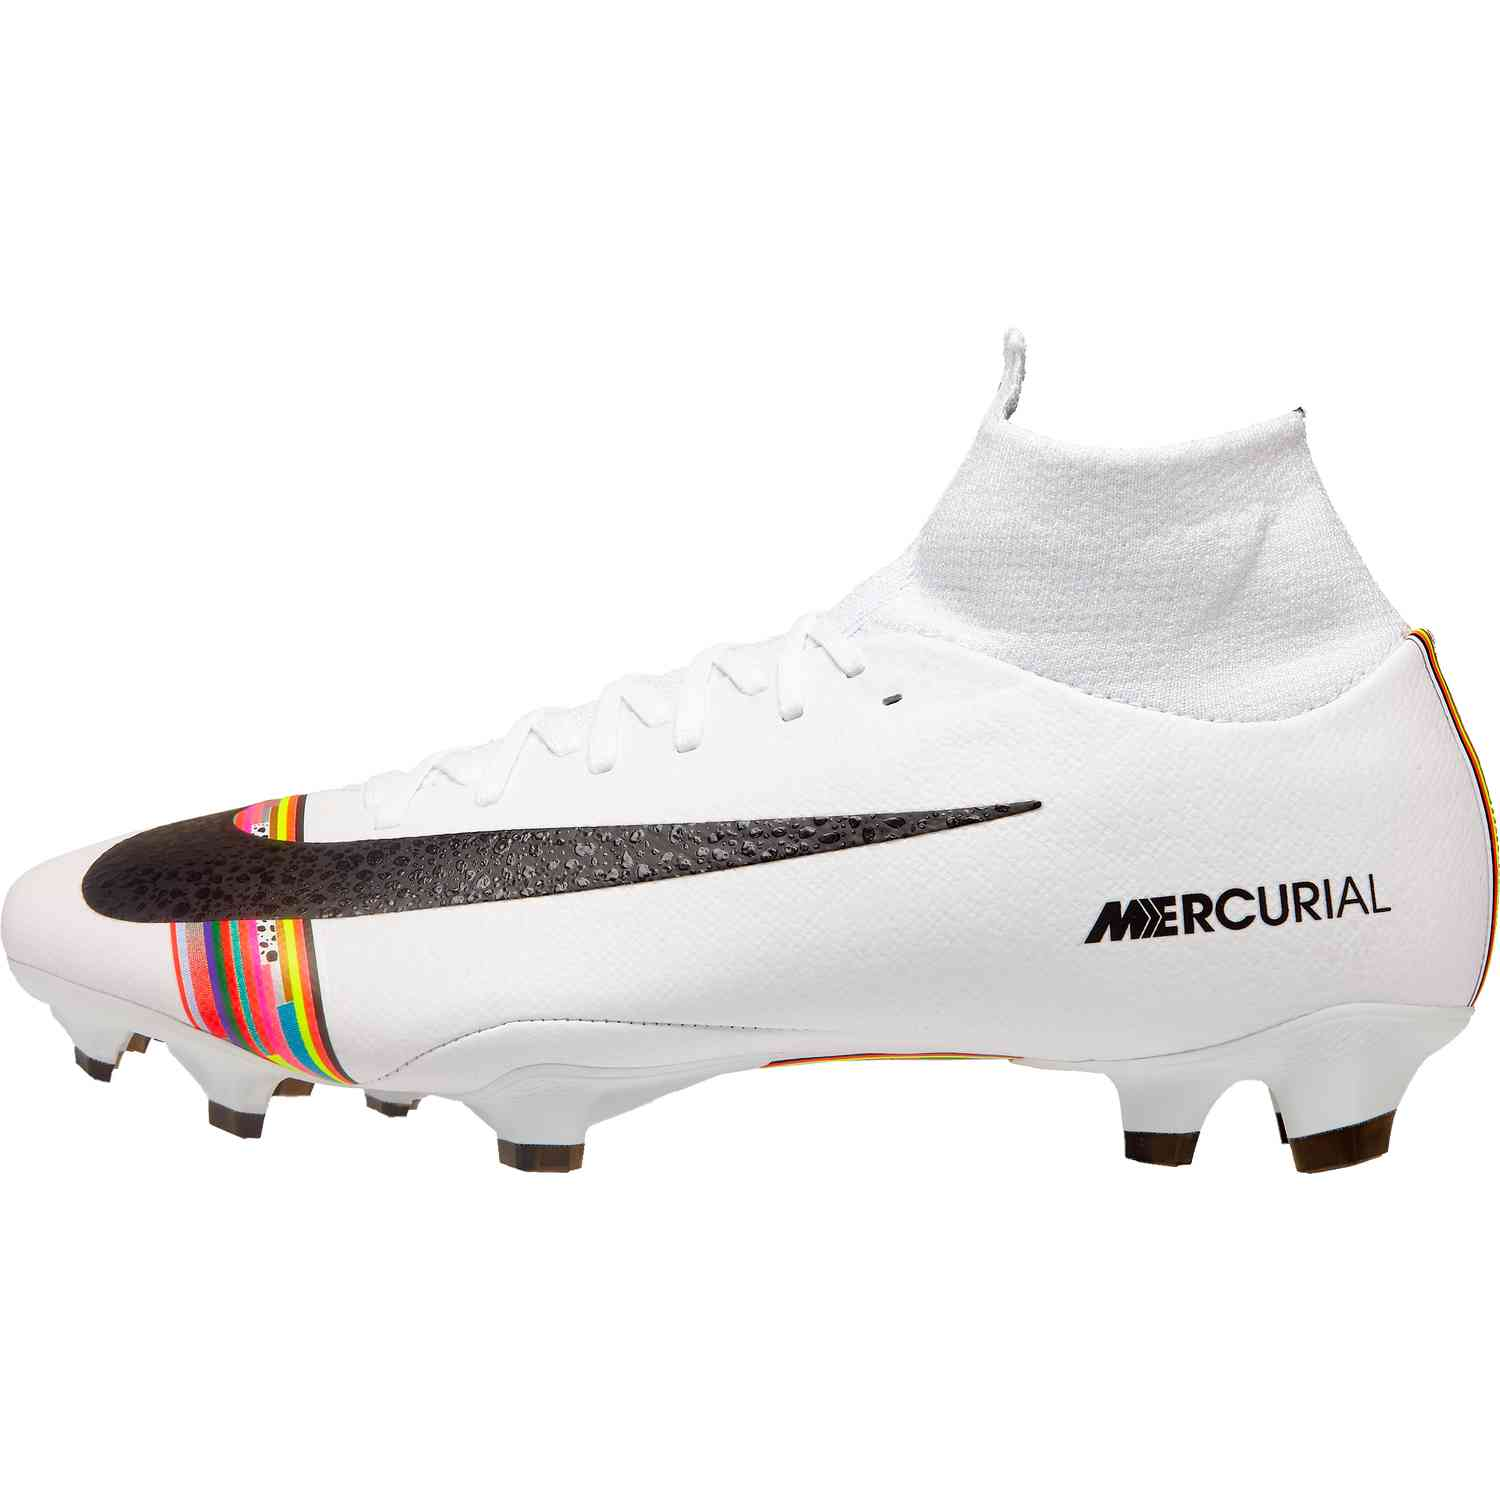 7cabe28bd Home   Shop By Brand   Nike Soccer   Nike Soccer Shoes   Nike Mercurial  SuperFly